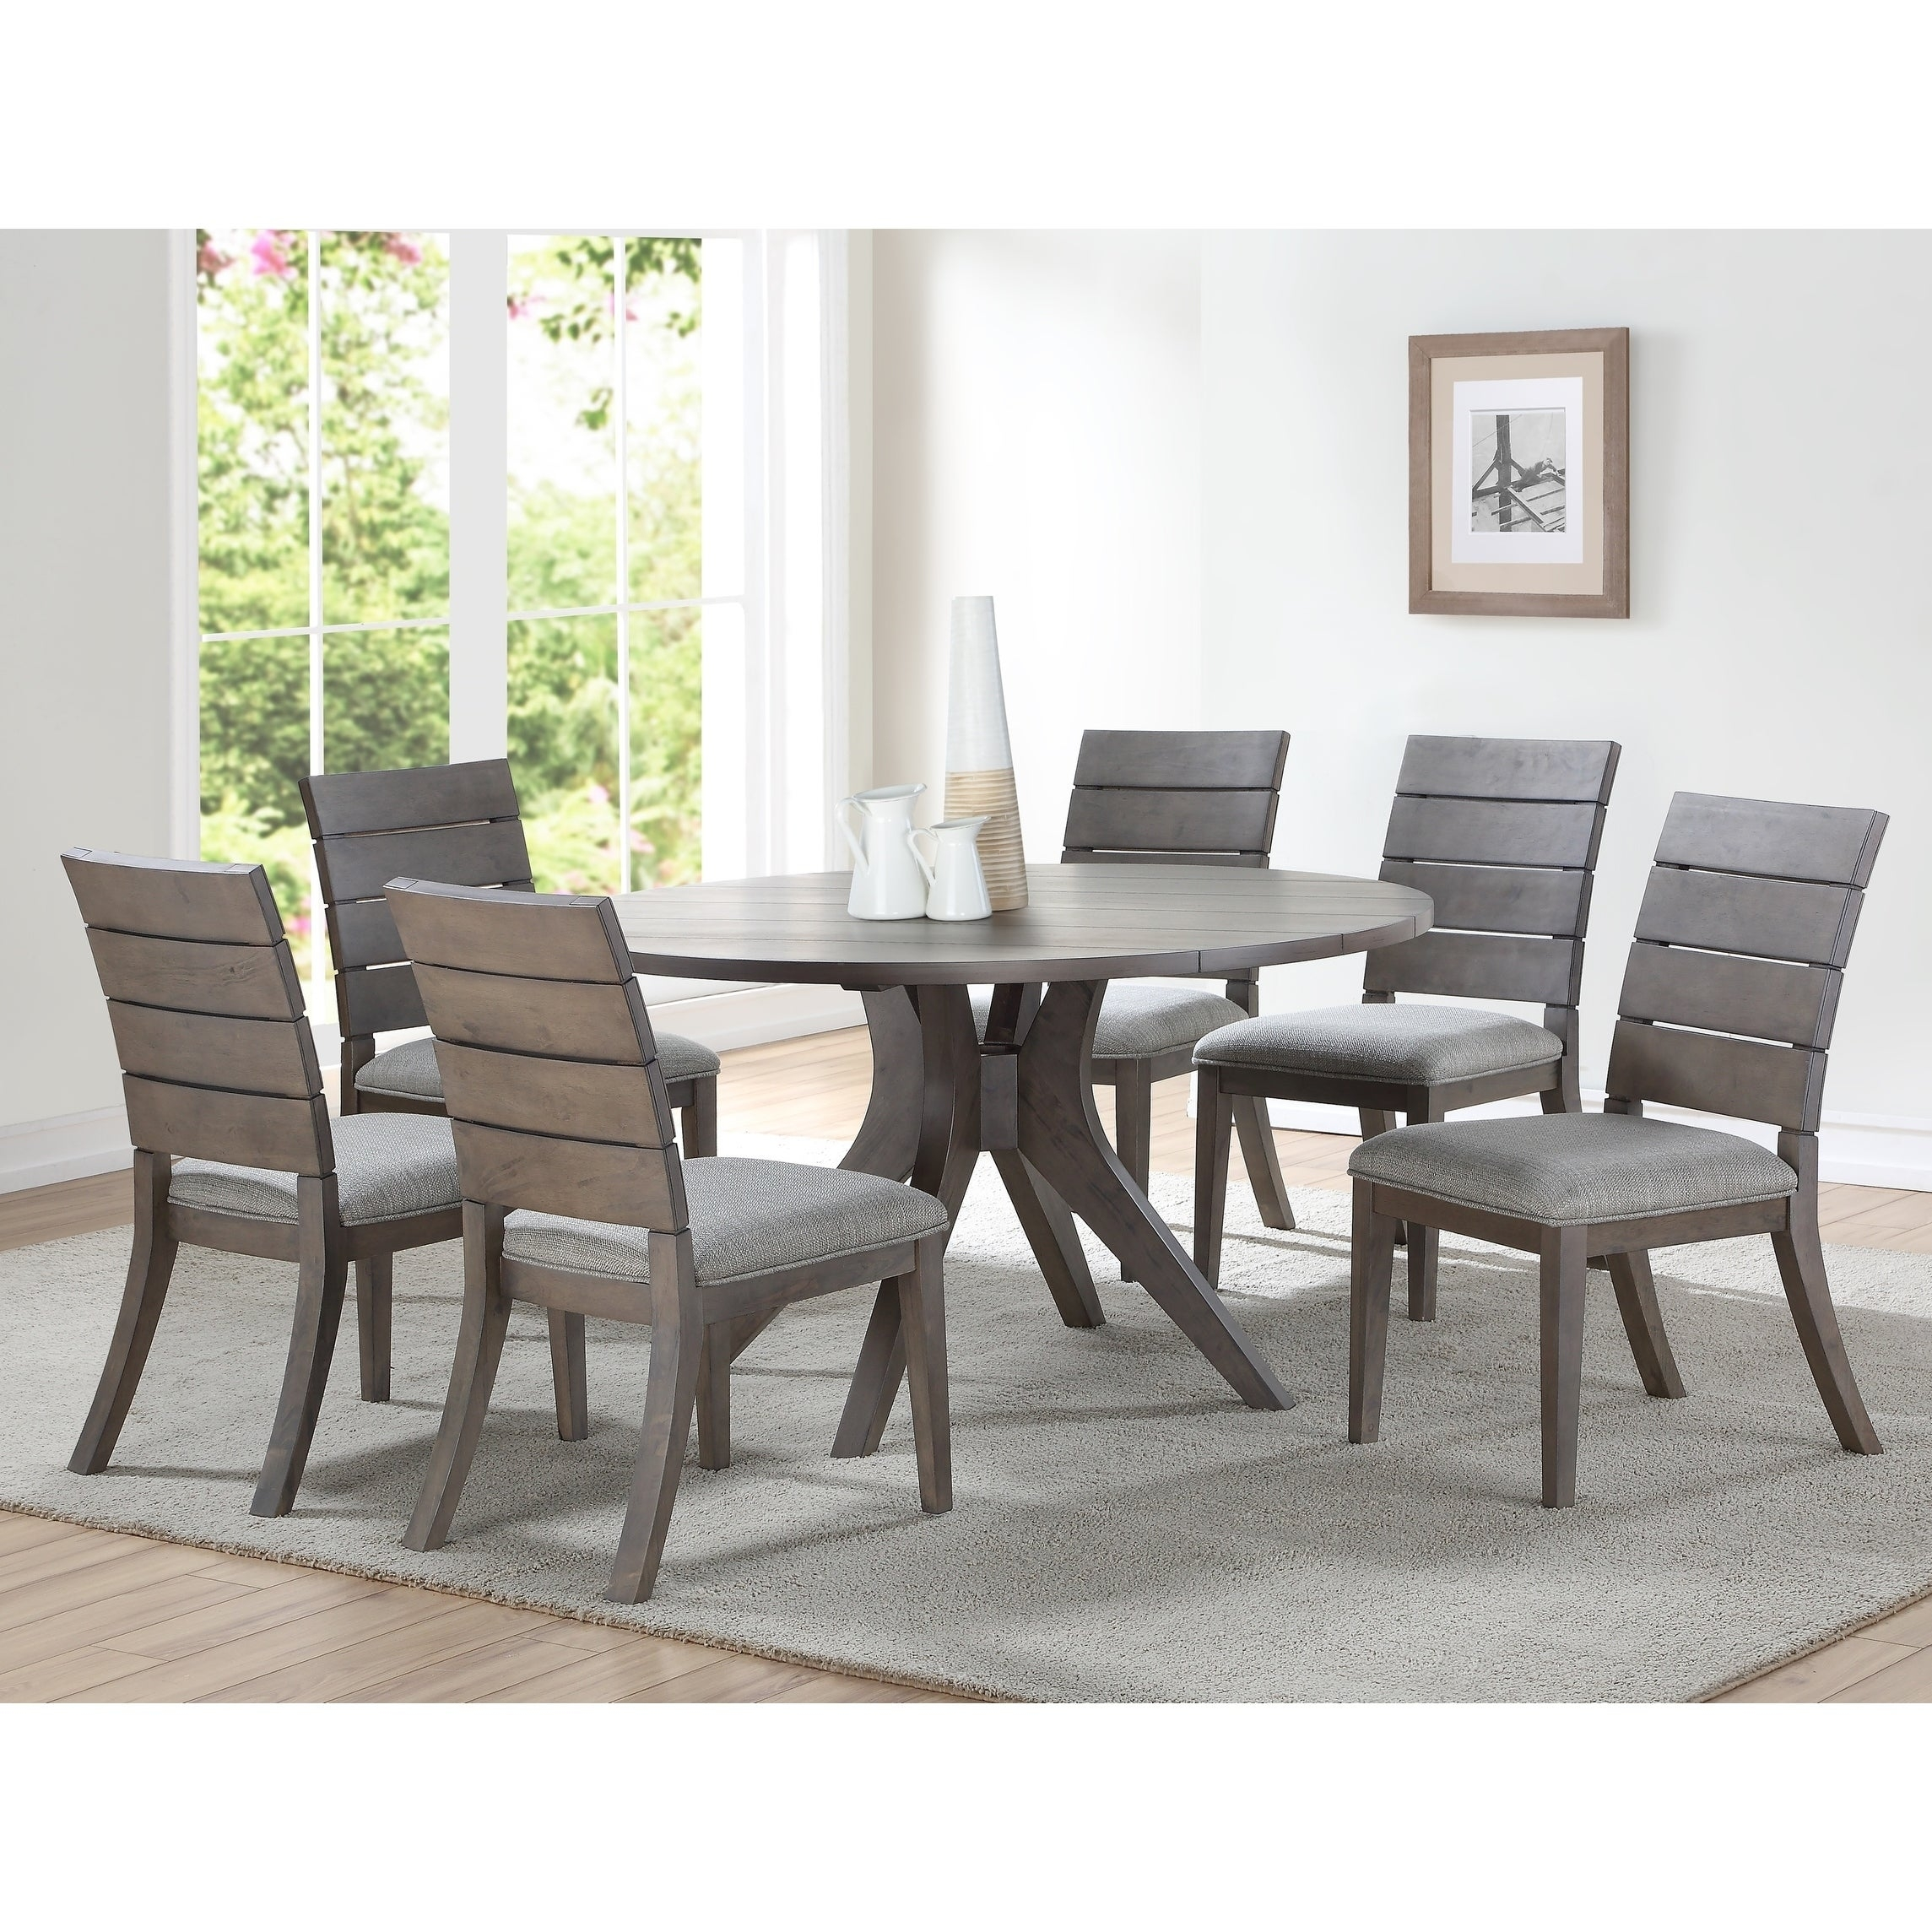 the gray barn abernathy grey and oak wood 54 inch round modern dining table